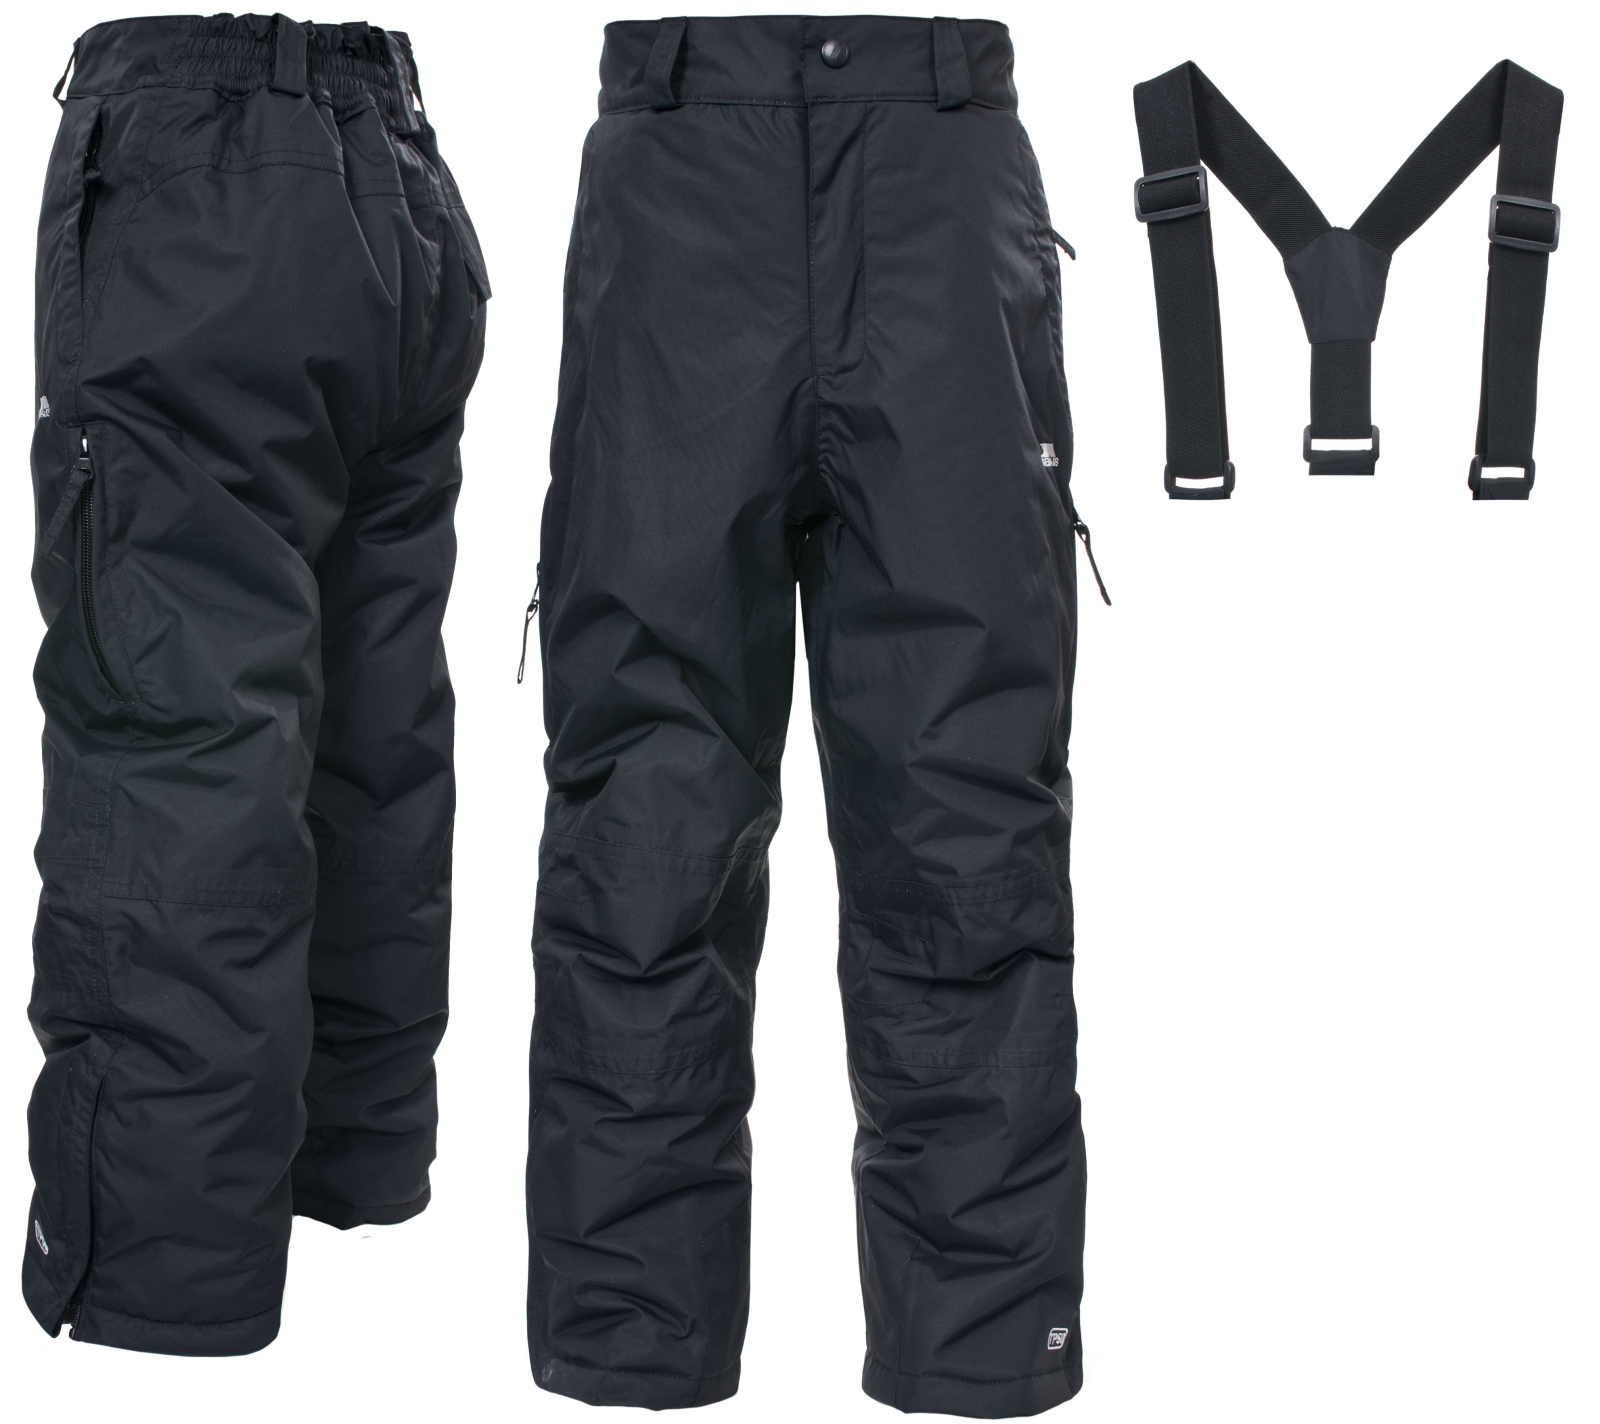 Girls Snow Pants & Winter Pants When you need girls' snow pants, turn to ragabjv.gq's impressive selection that your girl will love. Whether tearing through fresh powder on the mountain or sledding down a park hill, your teen girl will stay warm and dry for hours in our quality snow and winter pants.